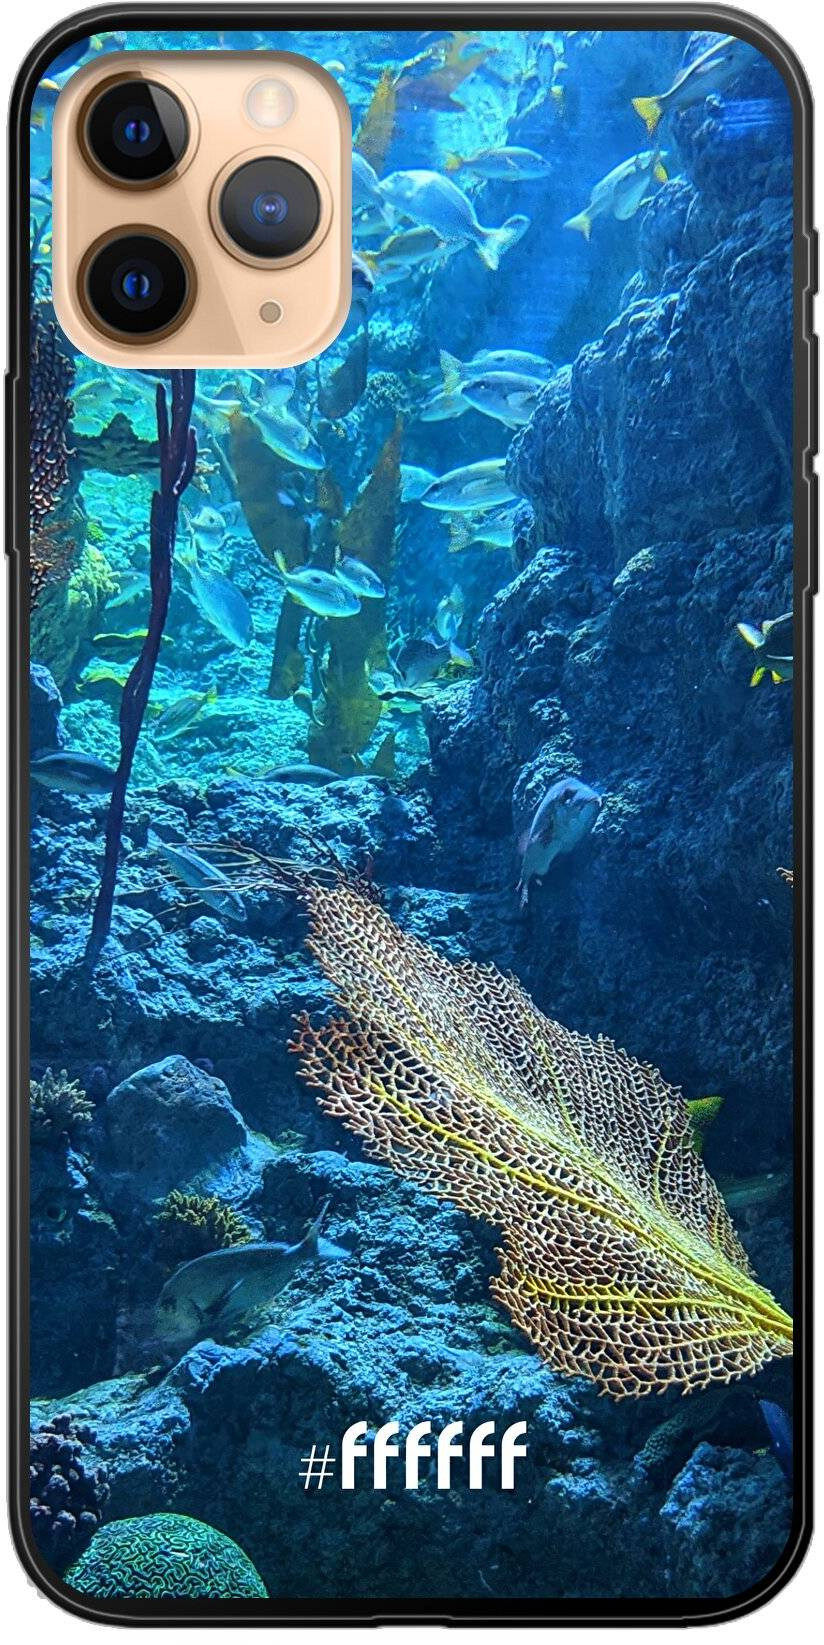 Coral Reef iPhone 11 Pro Max